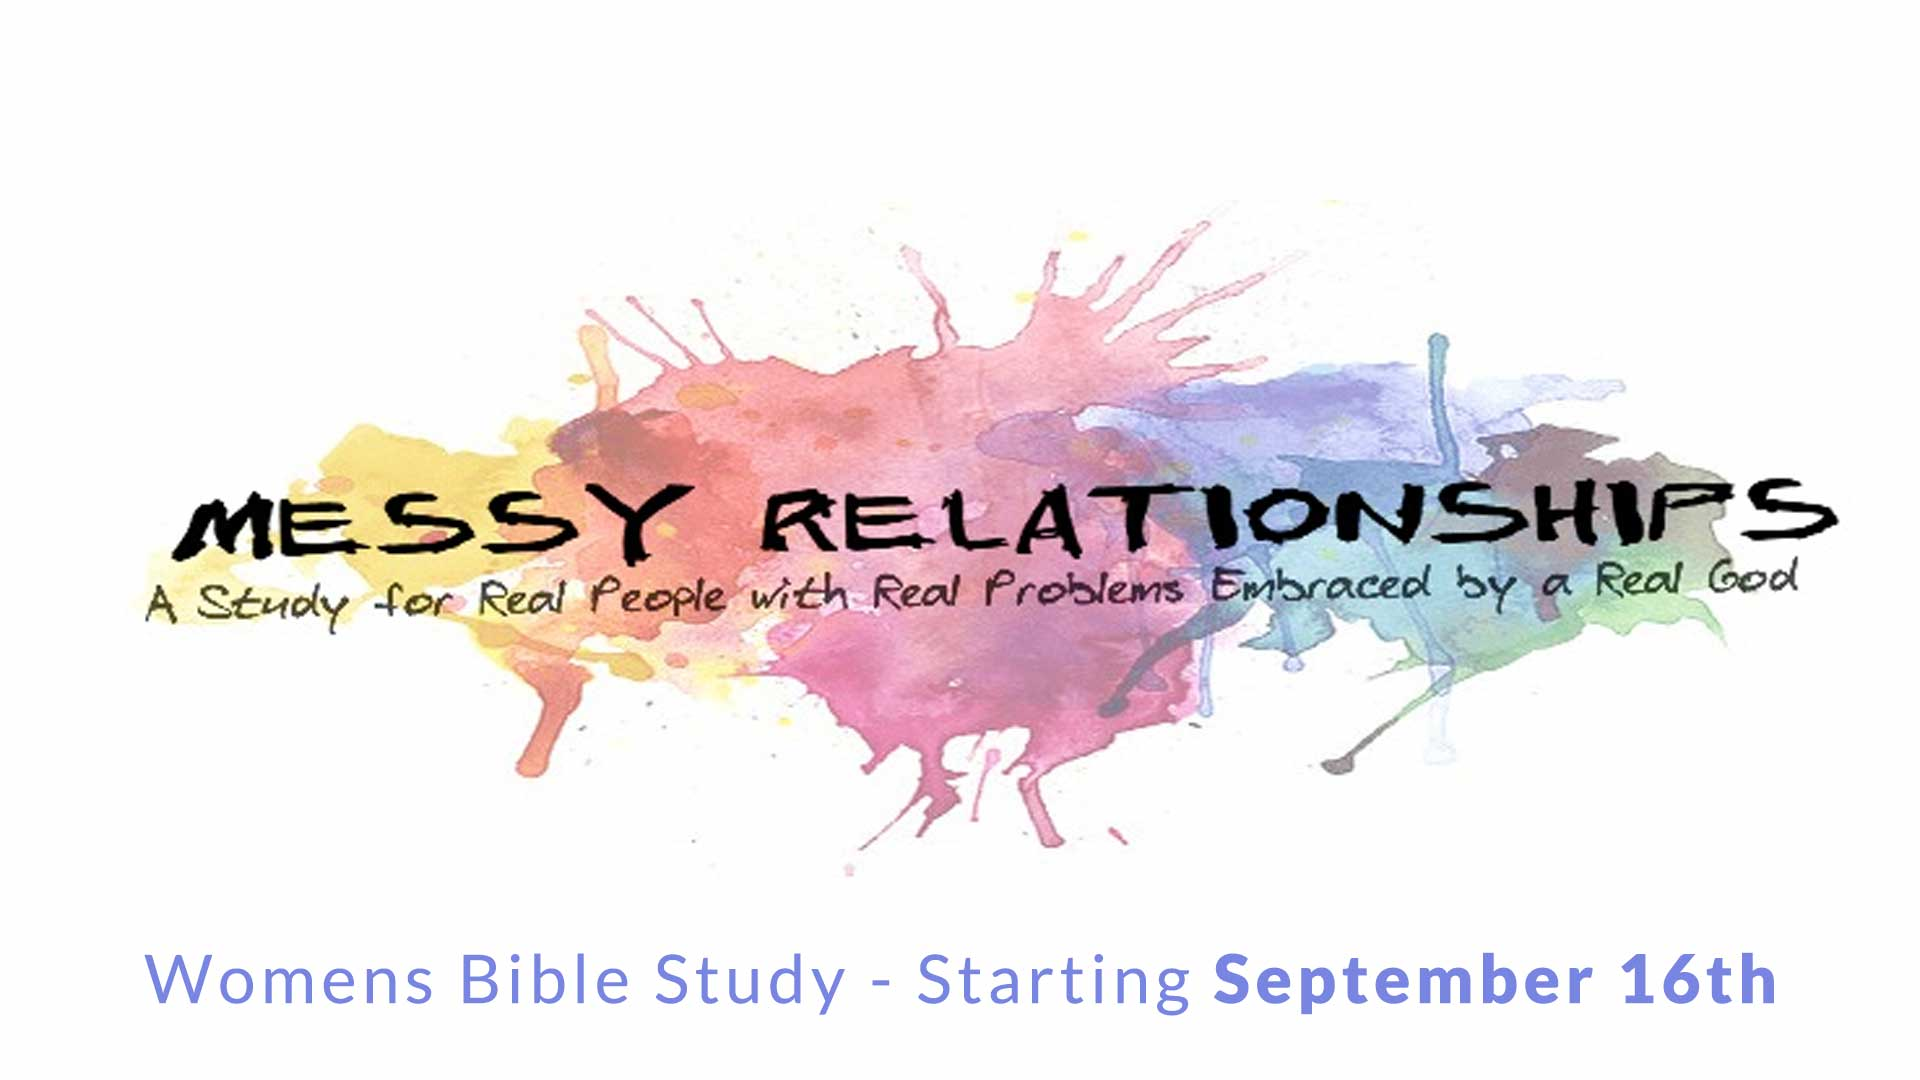 Join us for our Womens Bible Study Starting September 16th